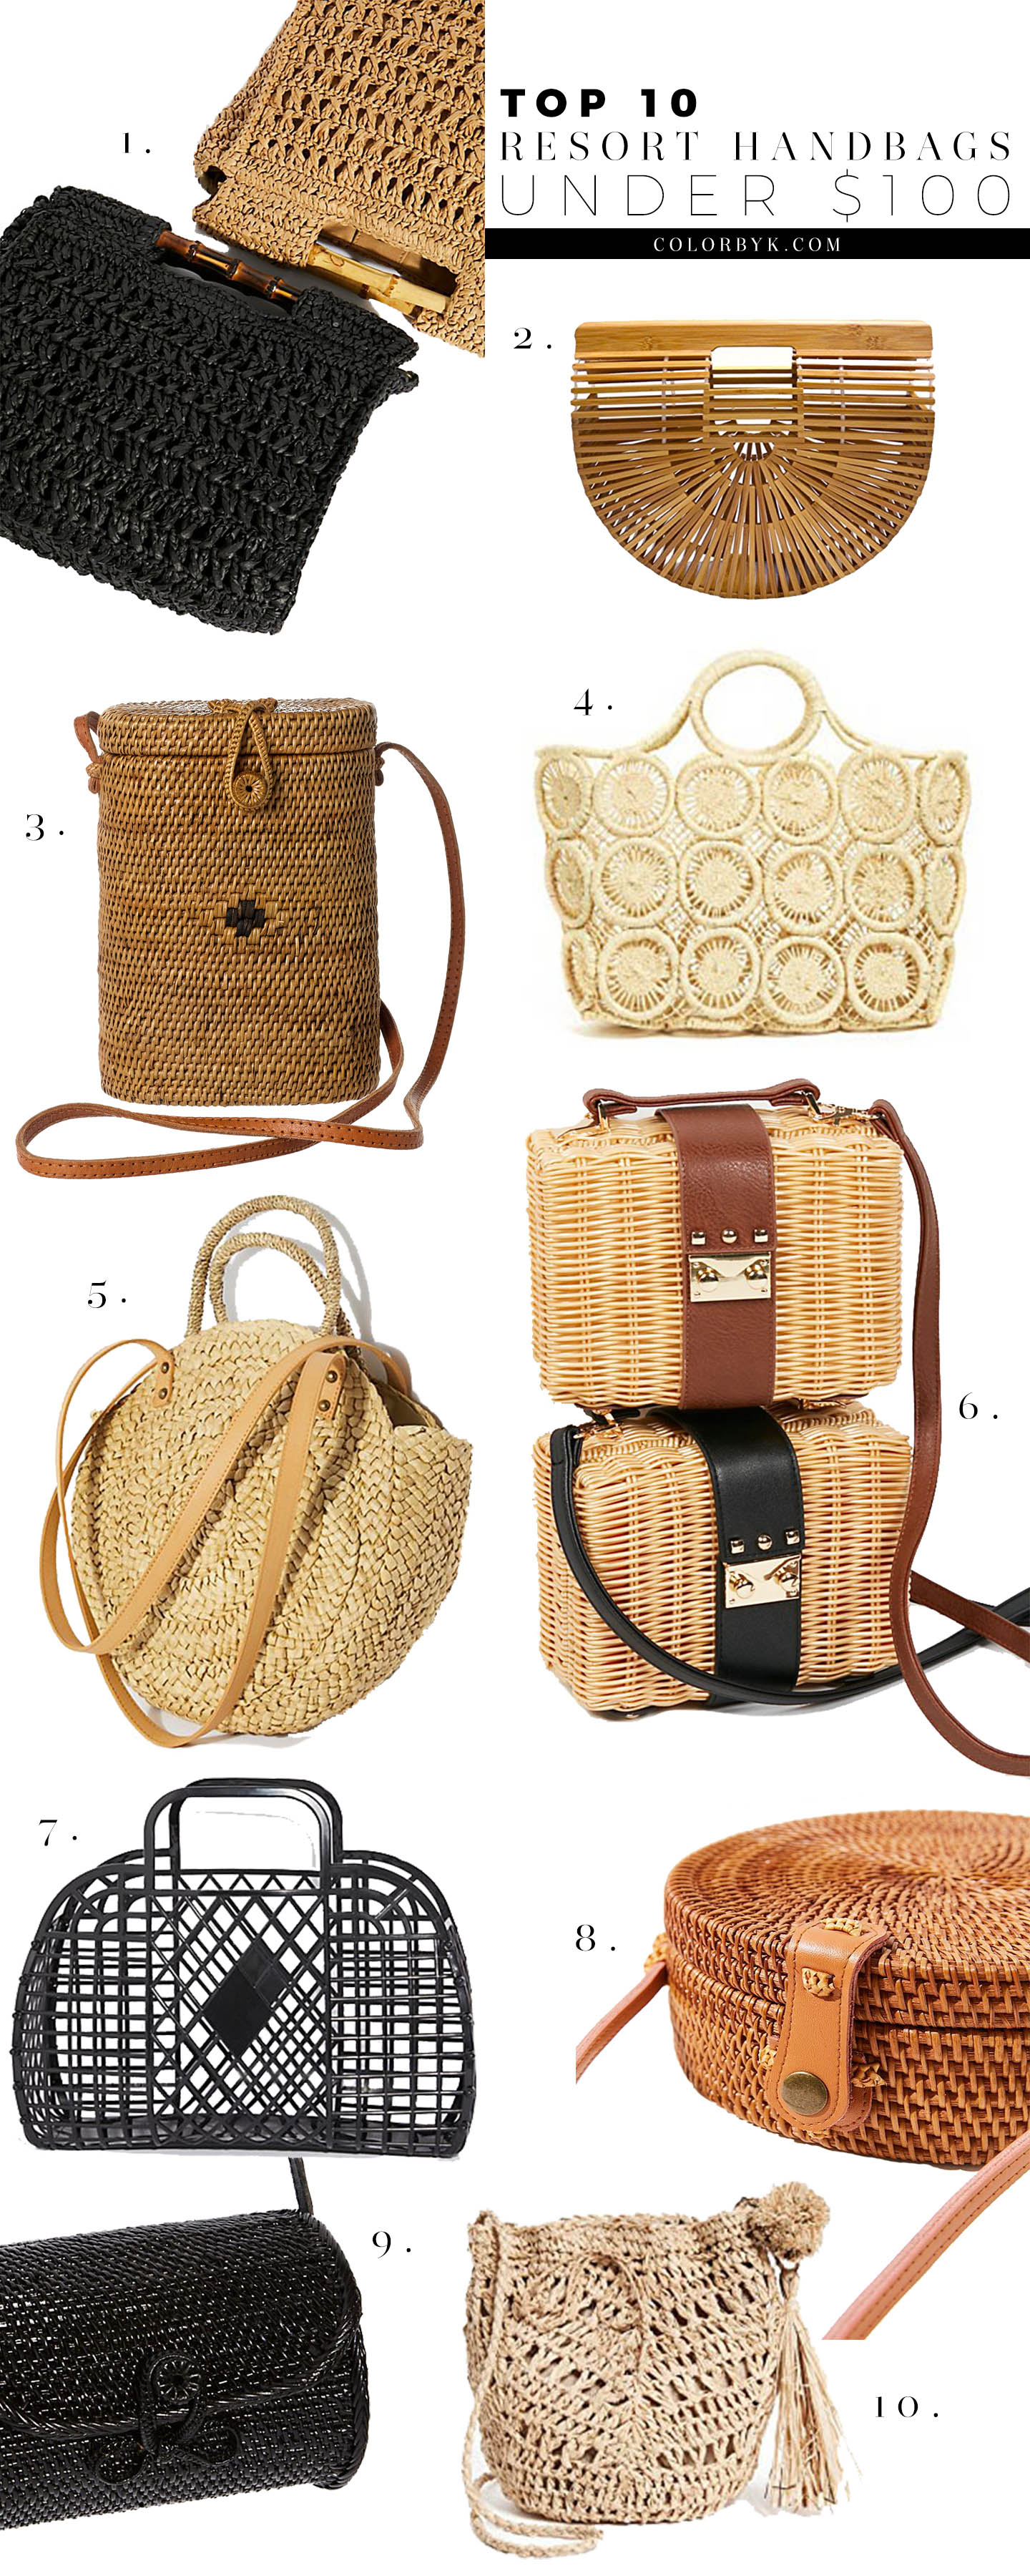 Resort Handbags Under $100